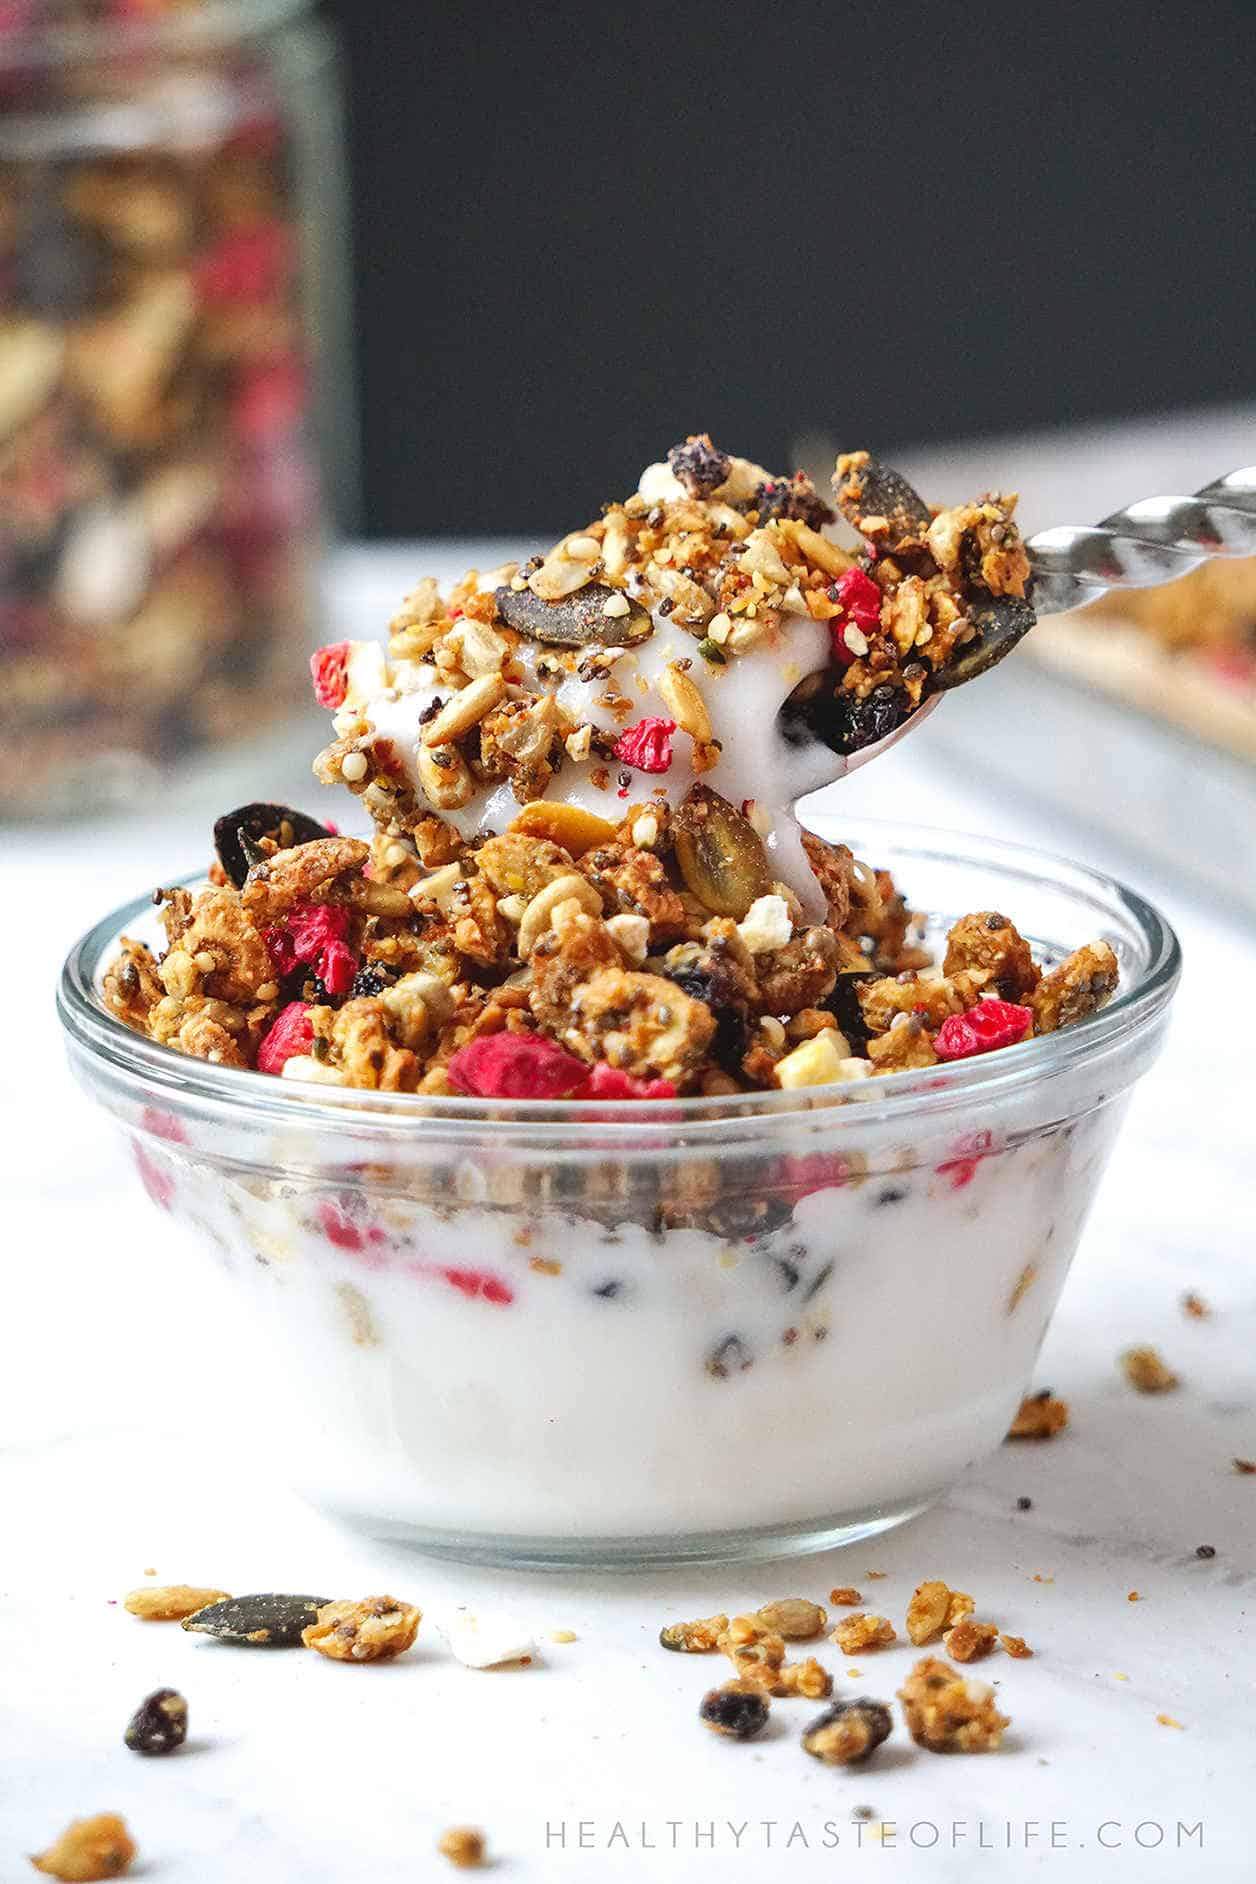 Healthy Keto Granola Recipe - great for Low Carb, Paleo, Whole 30, Dairy Free, Gluten Free and Vegan diets.